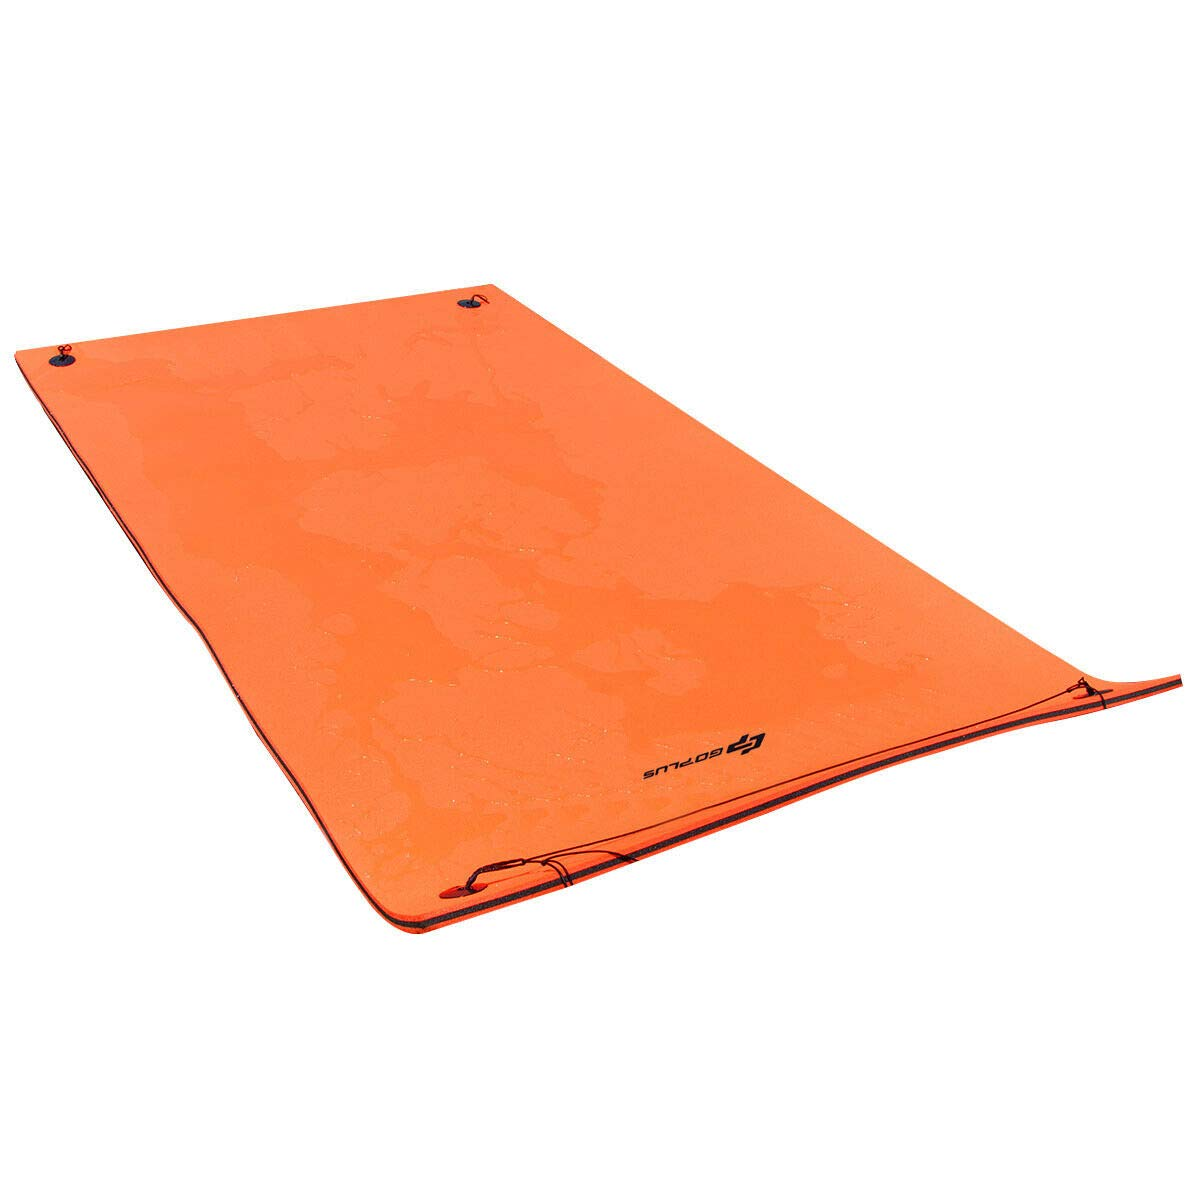 Goplus Floating Water Pad Mat for Lakes 3 Layer Floating Foam Fun Mat Aqua Pad with Tear-Stop Technology Designed for Water Recreation and Relaxing (12' x 6') by Goplus (Image #1)